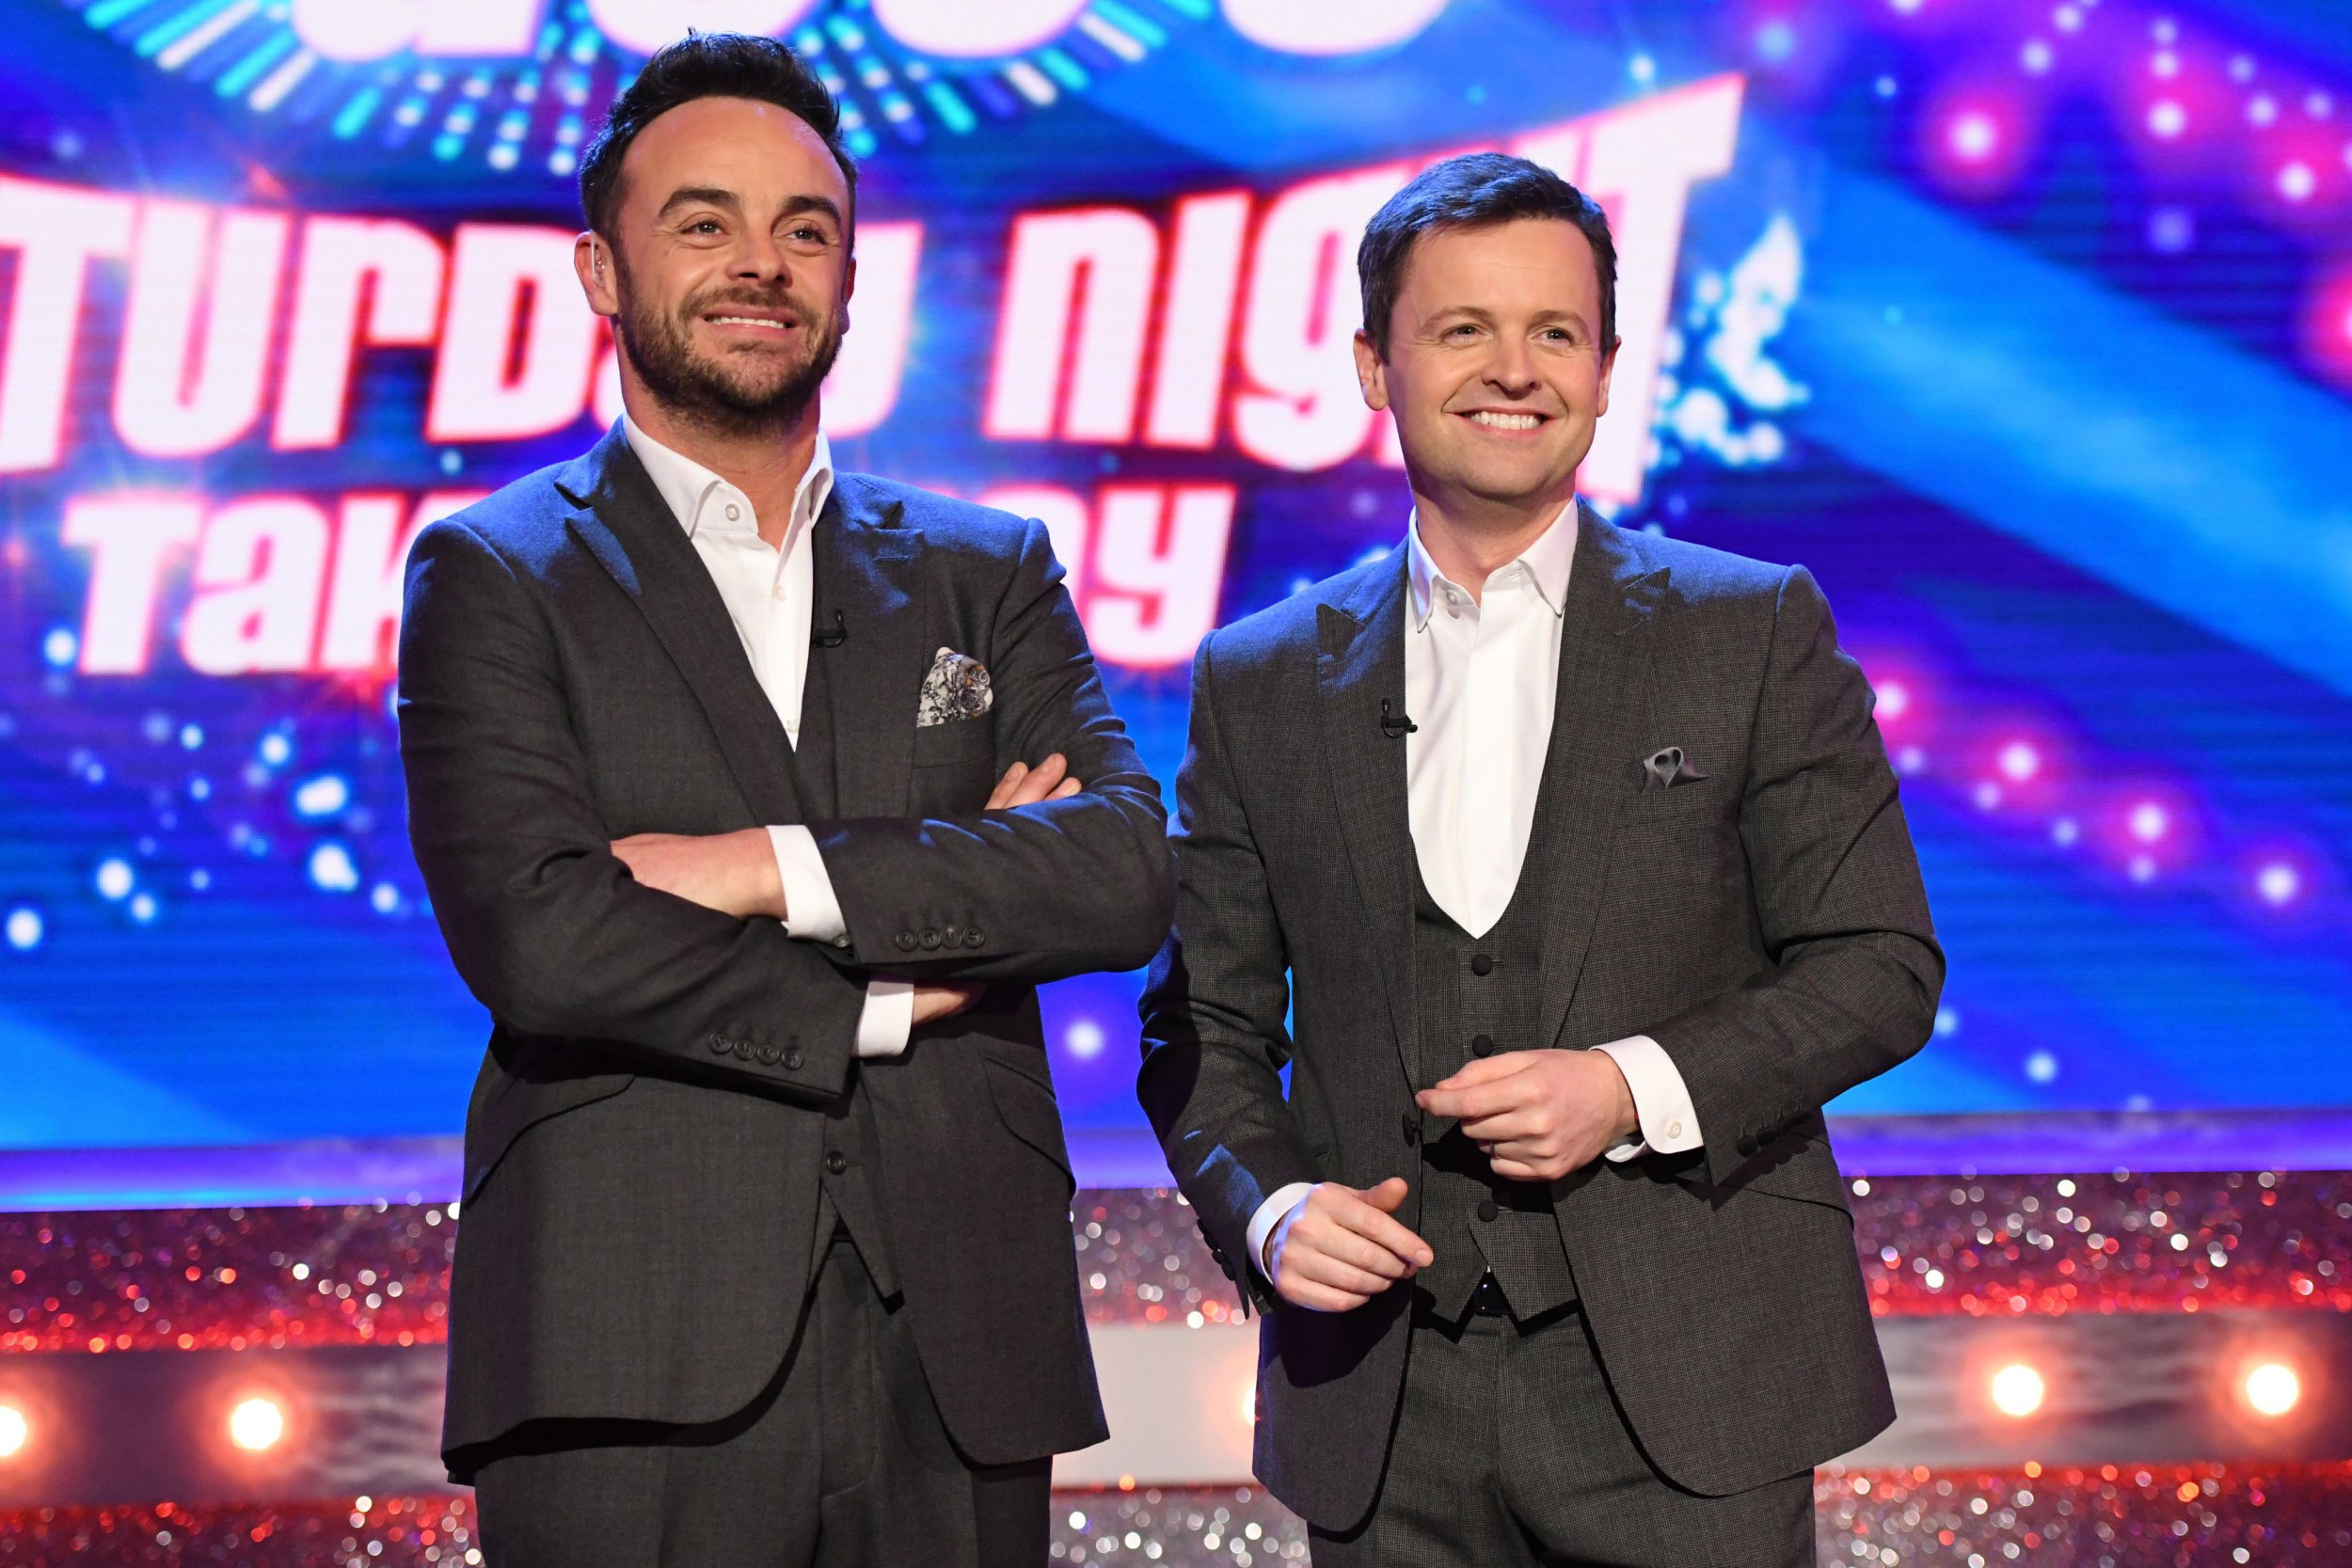 Editorial use only Mandatory Credit: Photo by Kieron Mccarron/REX/Shutterstock (9469464as) Anthony McPartlin and Declan Donnelly 'Ant & Dec's Saturday Night Takeaway' TV Show, Series 15, Episode 4, London, UK - 17 Mar 2018